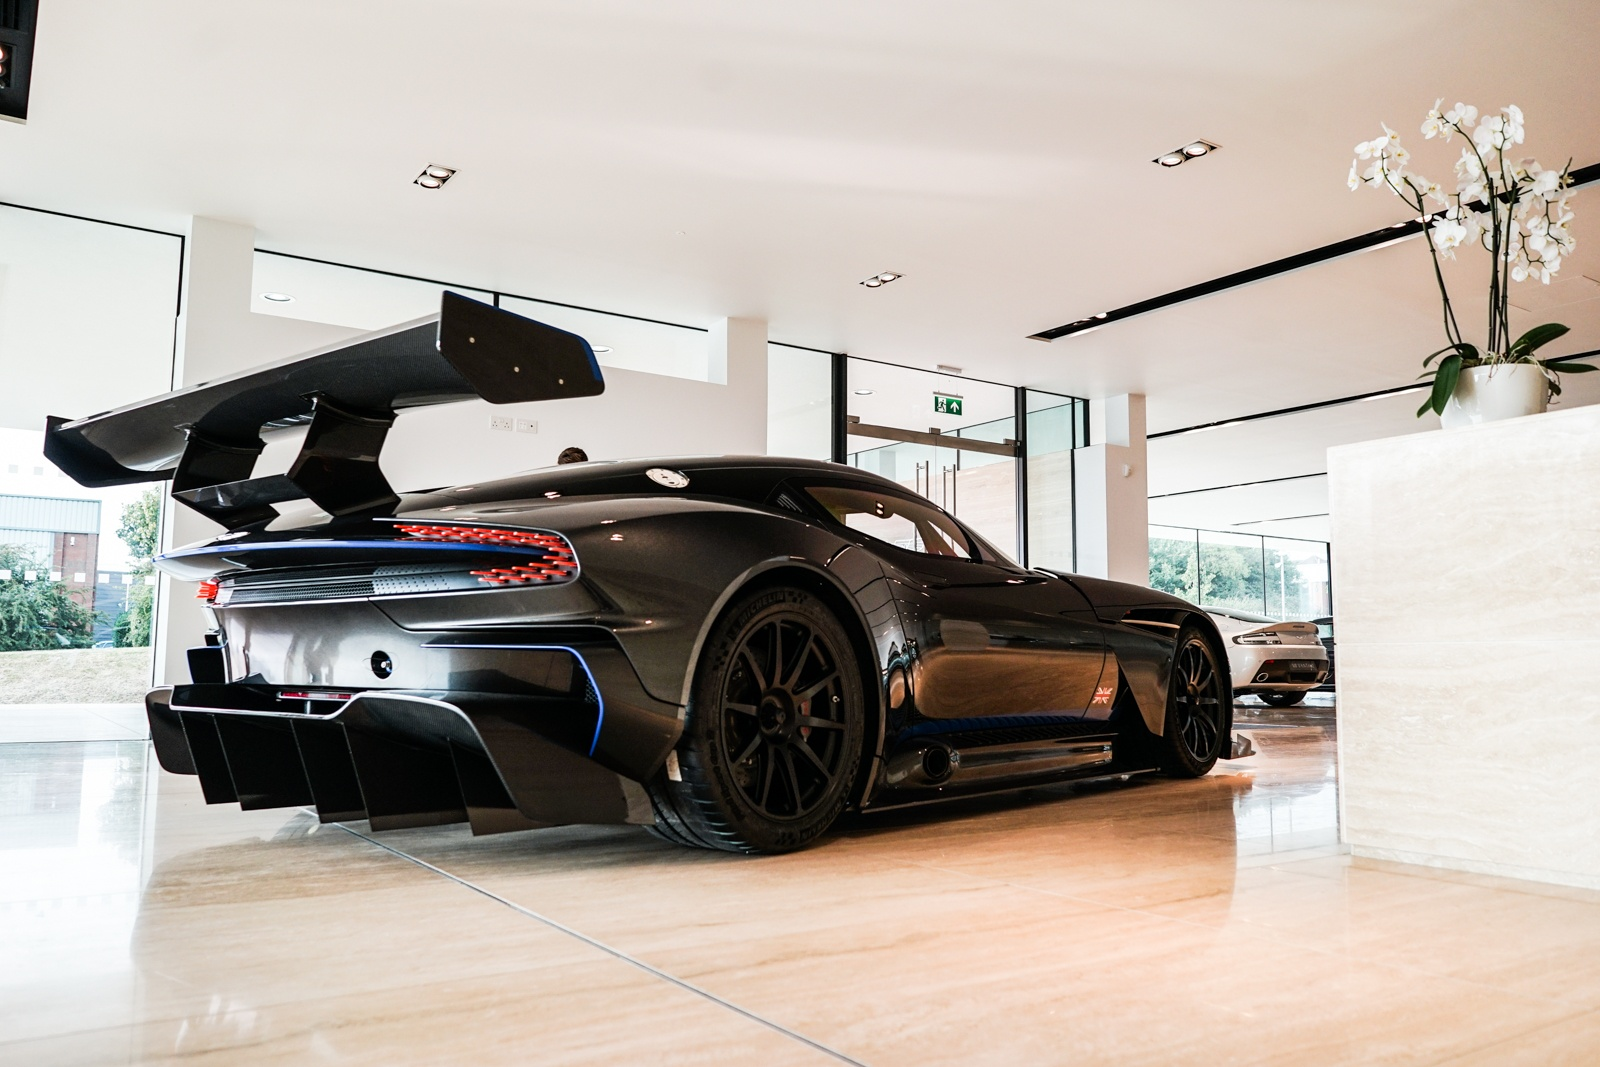 This Aston Martin Vulcan Is For Sale For R43 Million